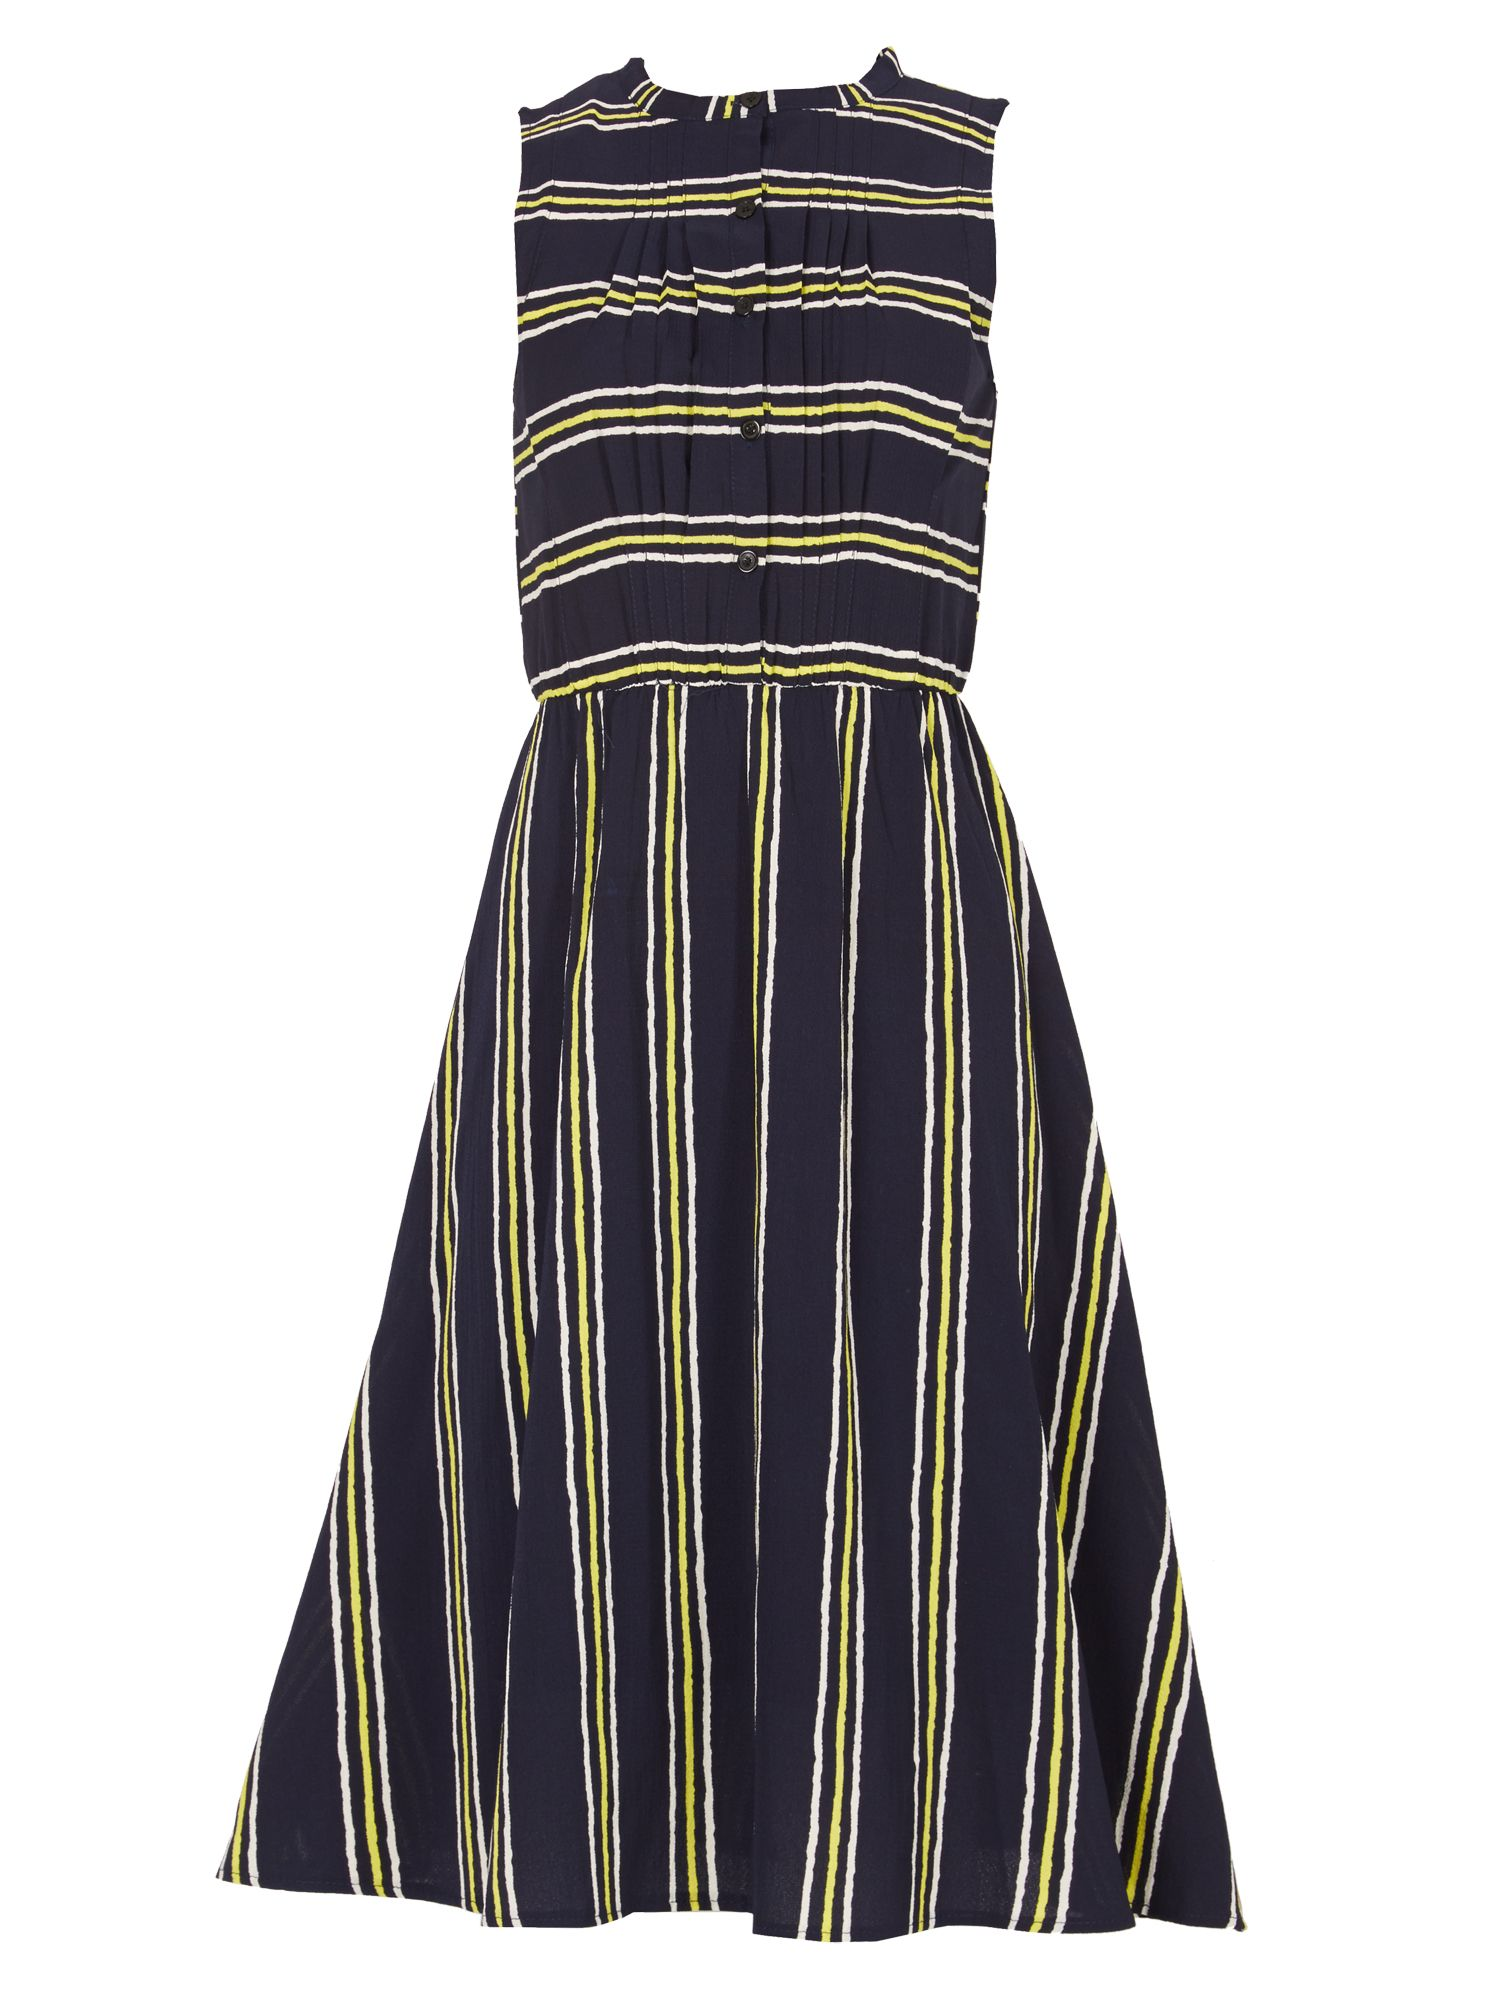 TENKI Sleeveless Stripy Midi Dress, Blue